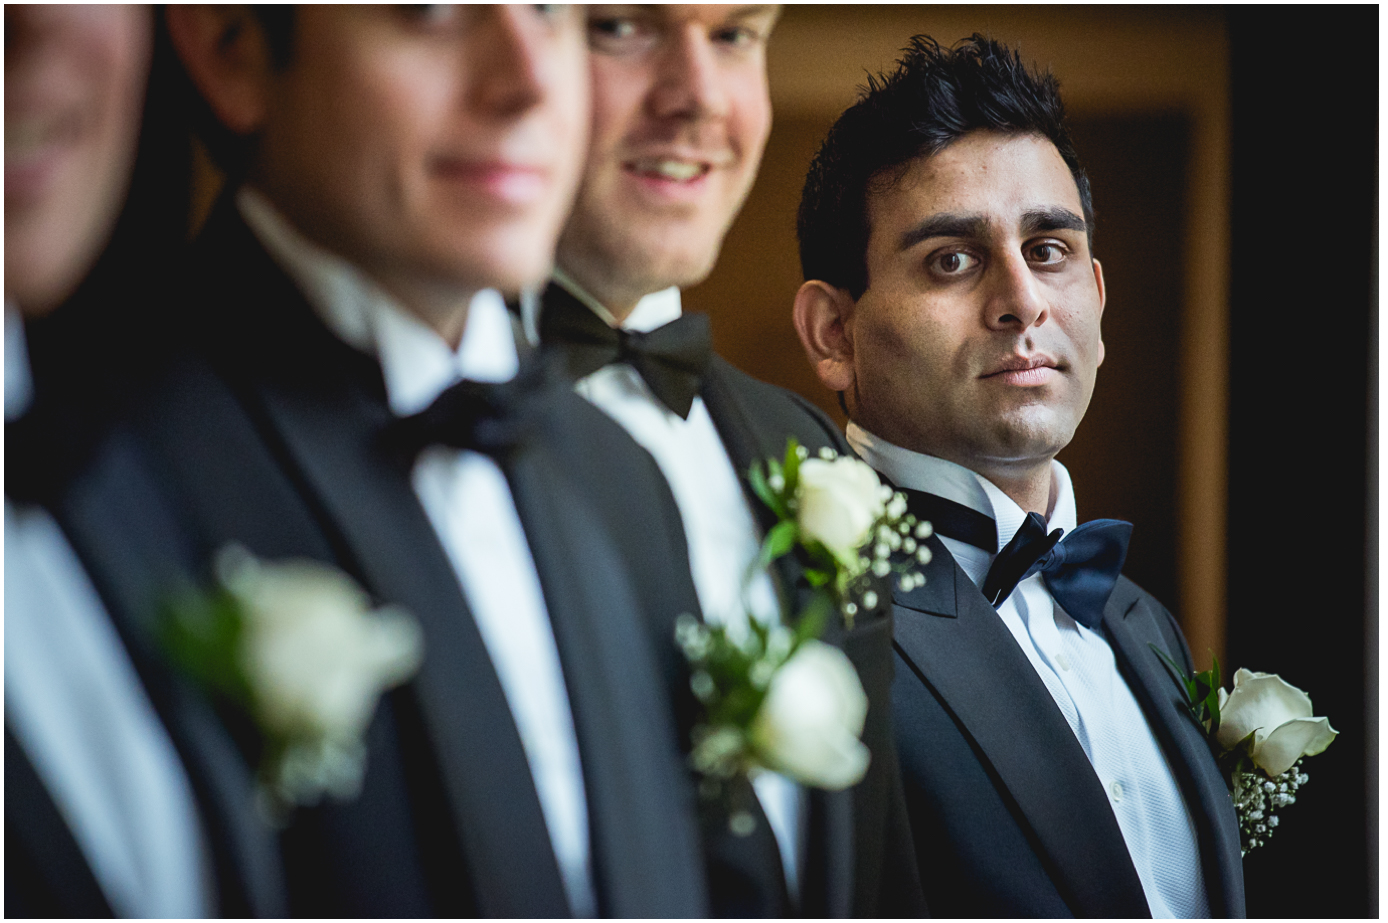 15a - Esmat and Angus - St. Ermin's Hotel London wedding photographer